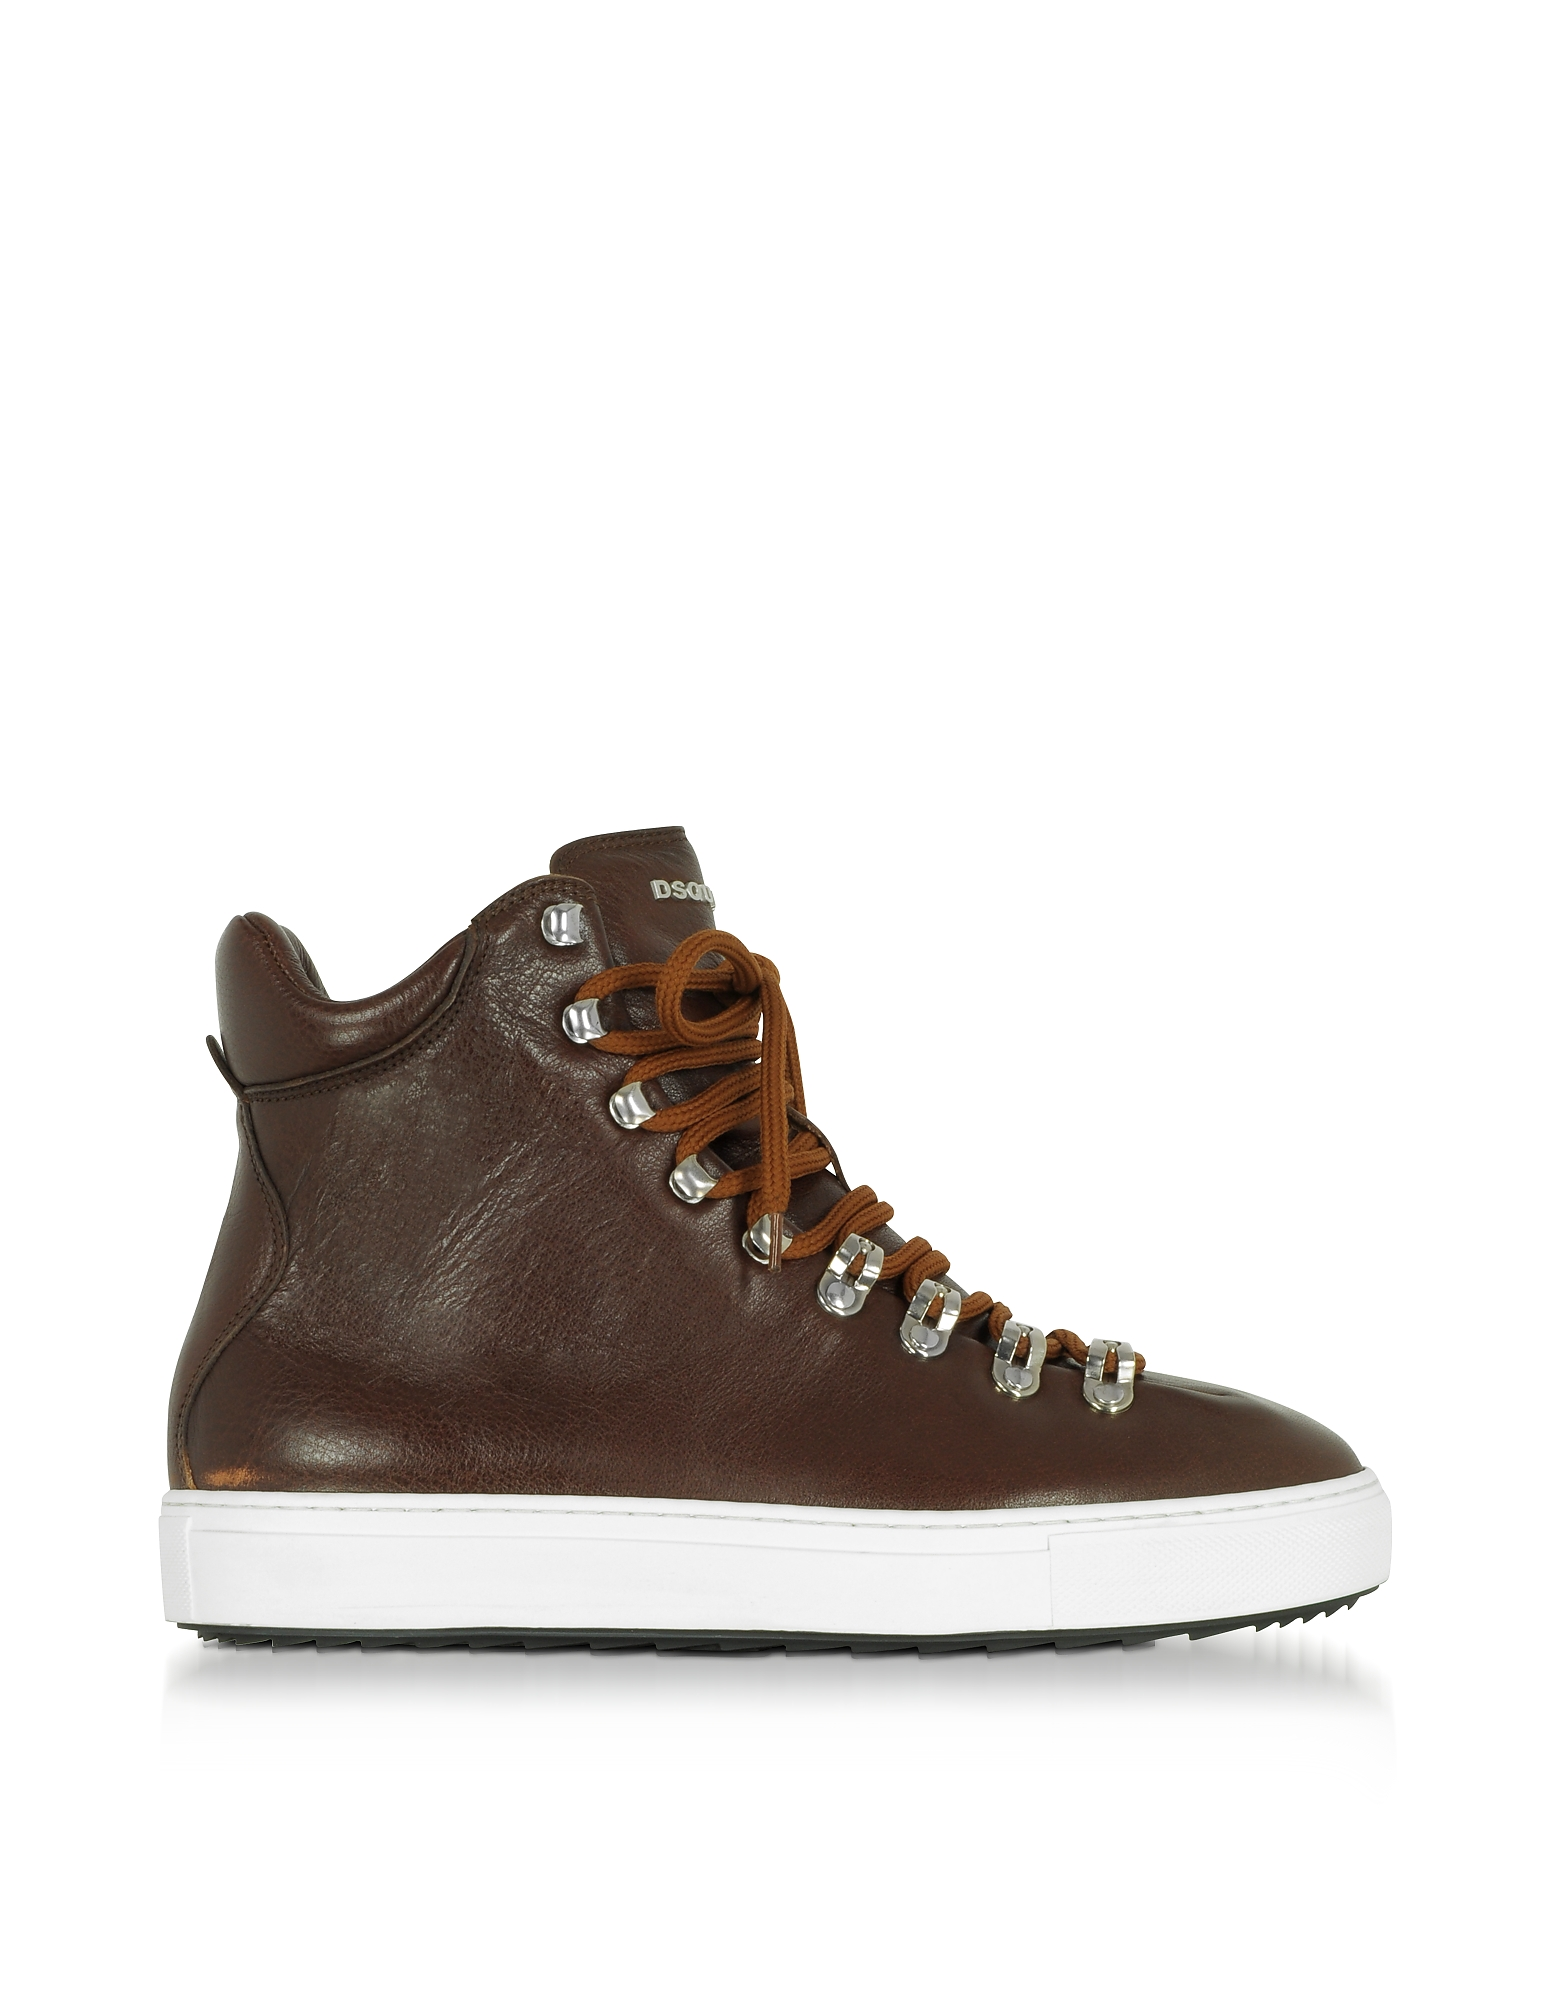 DSquared2 Shoes, Cuoio Leather High Top Men's Sneakers